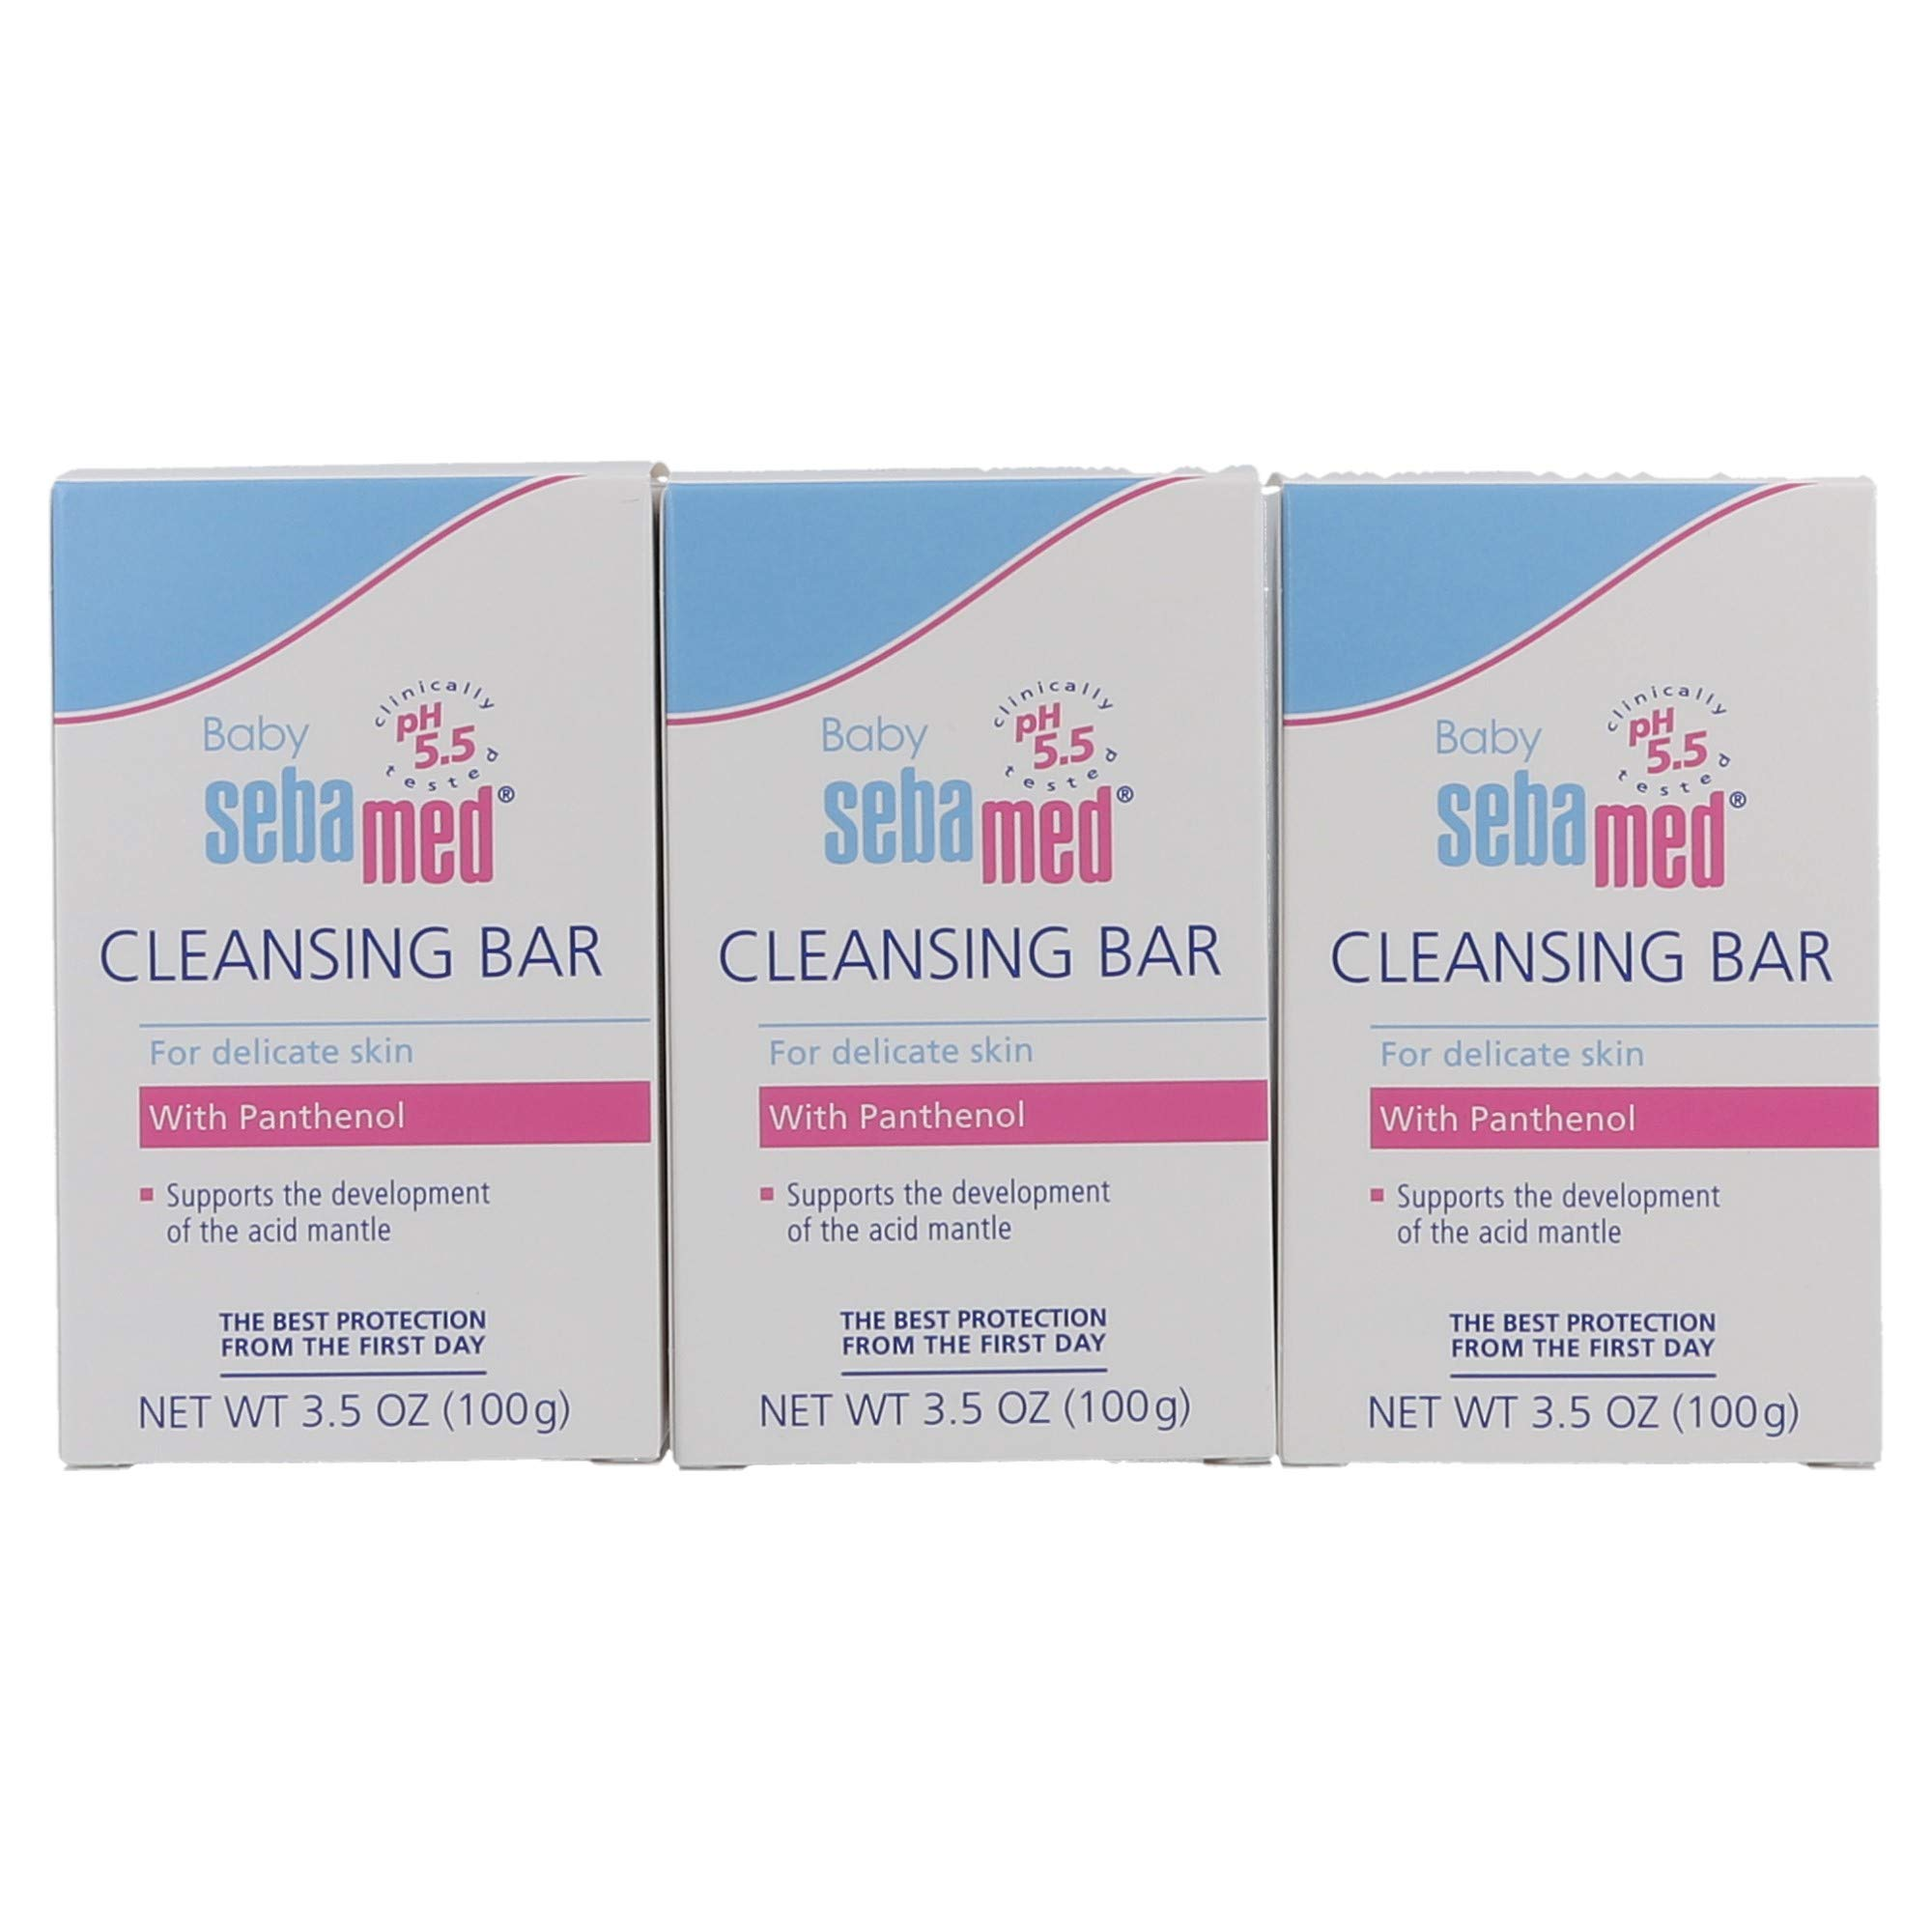 Sebamed Baby Ultra Mild Cleansing Bar - Hypoallergenic Non-irritating Cleanser with Vitamins and Amino Acids 3.5 Ounces (100g) (3) by SEBAMED